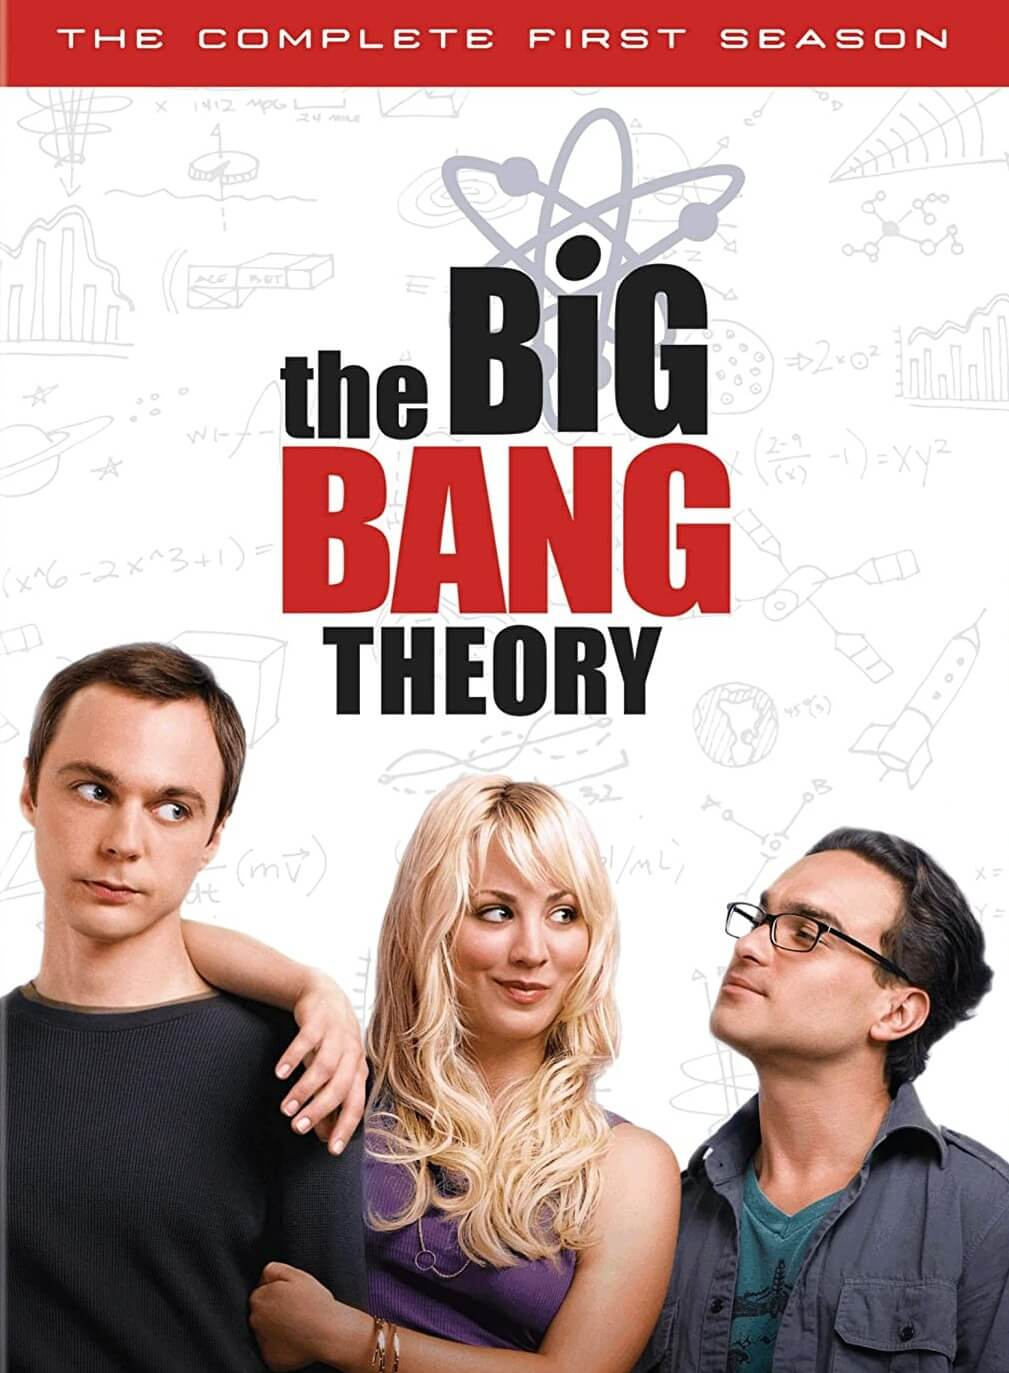 The Big Bang Theory S01 E04